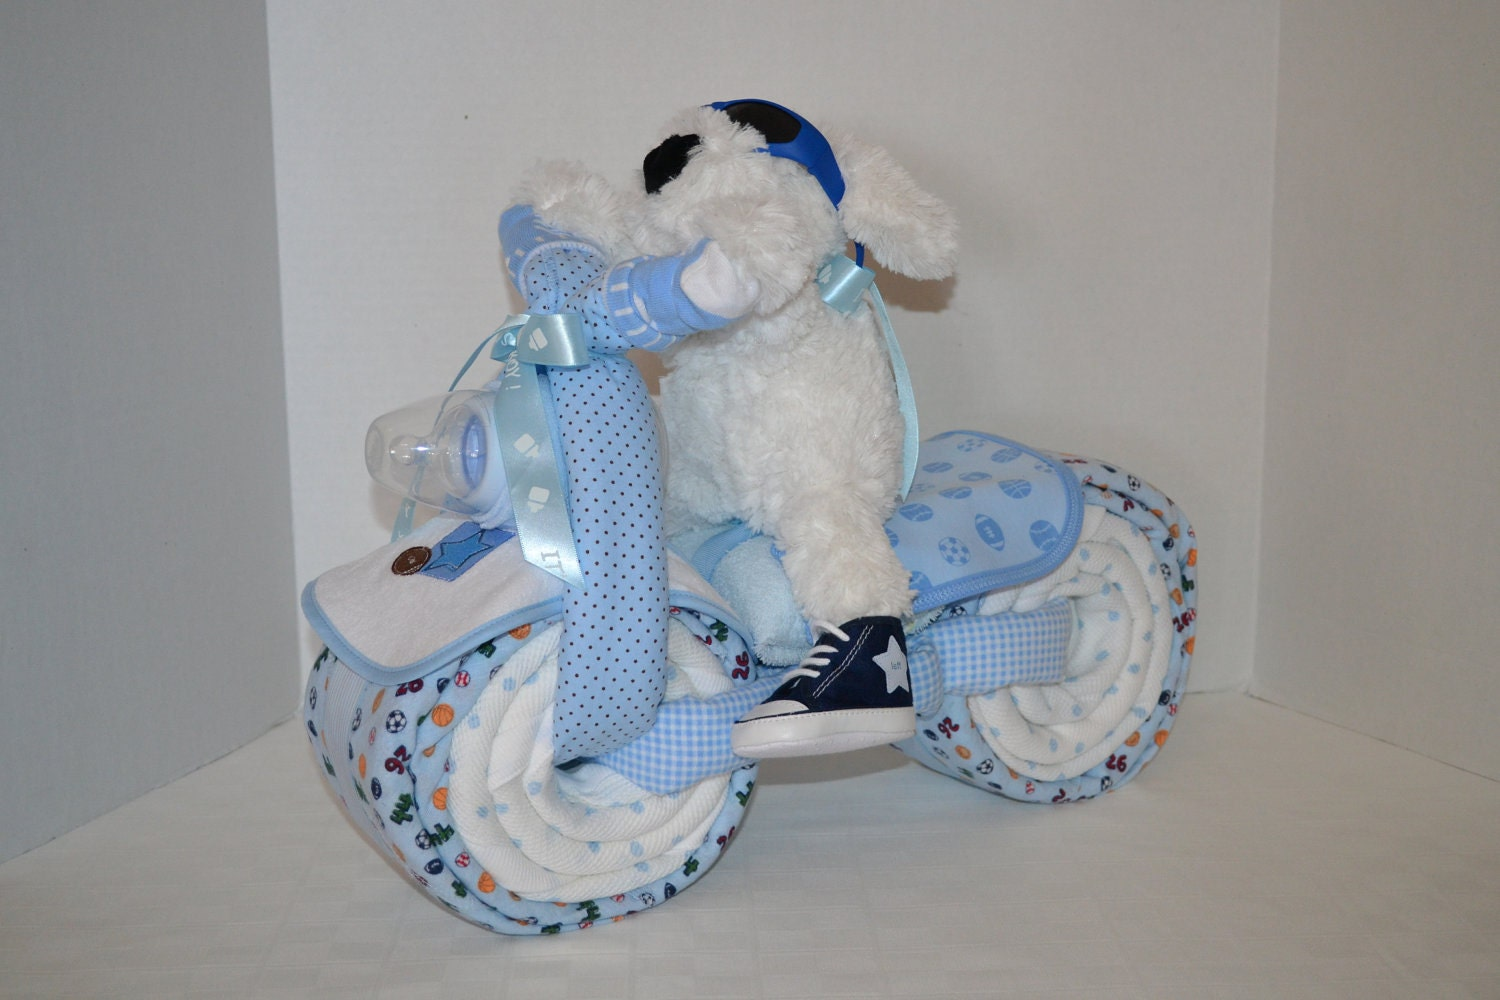 motorcycle bike diaper cake baby shower gift by arizonababycakes